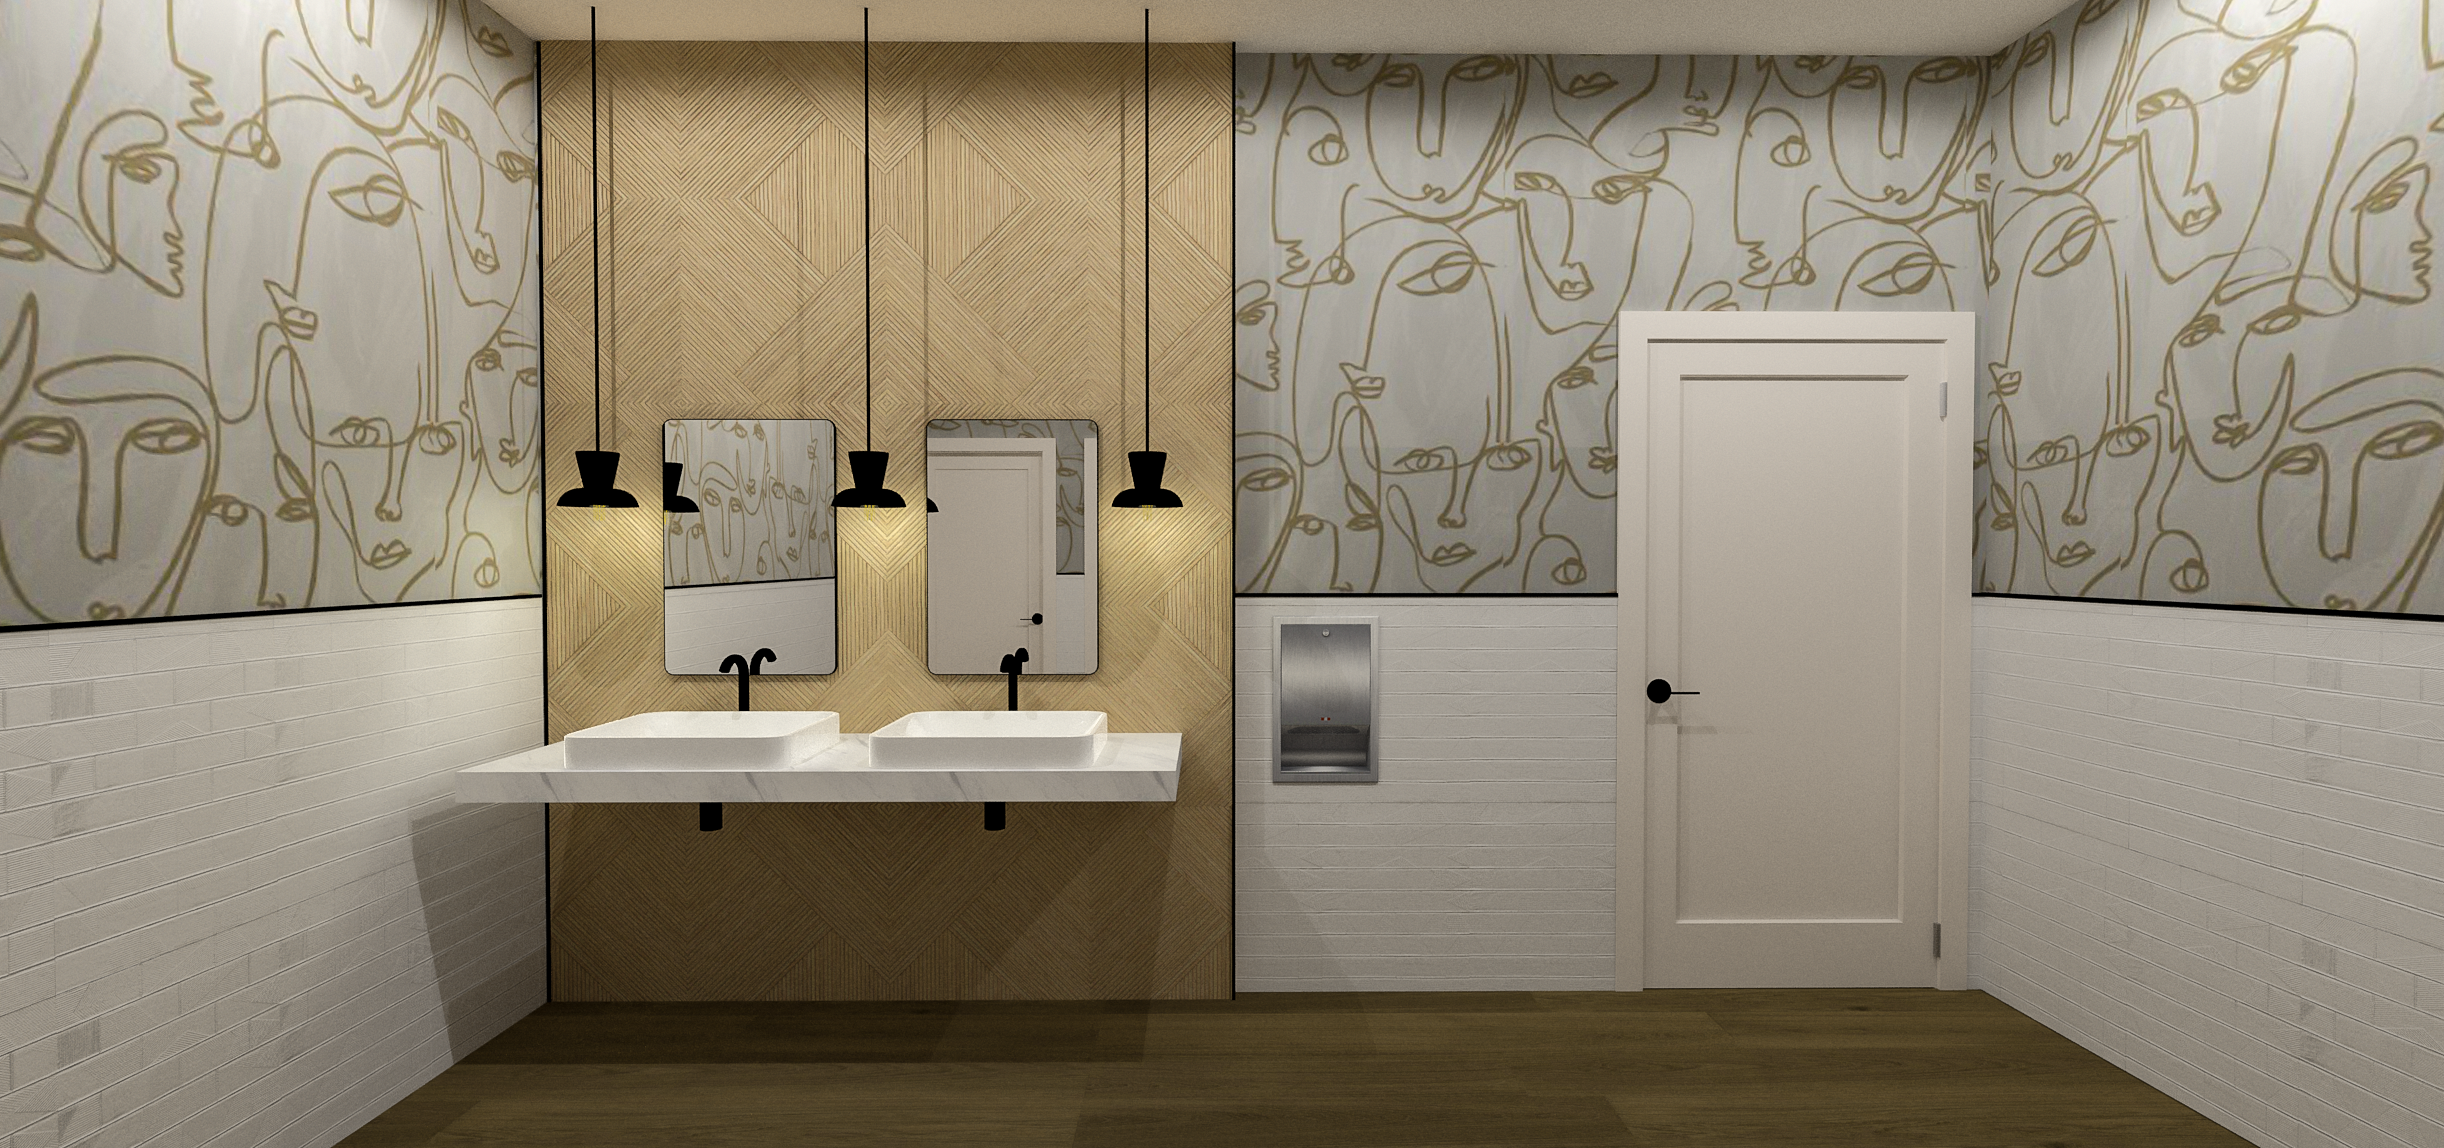 Sola Salons Contemporary Bathroom 2 | Designed by Bell + Voy Design Co..png